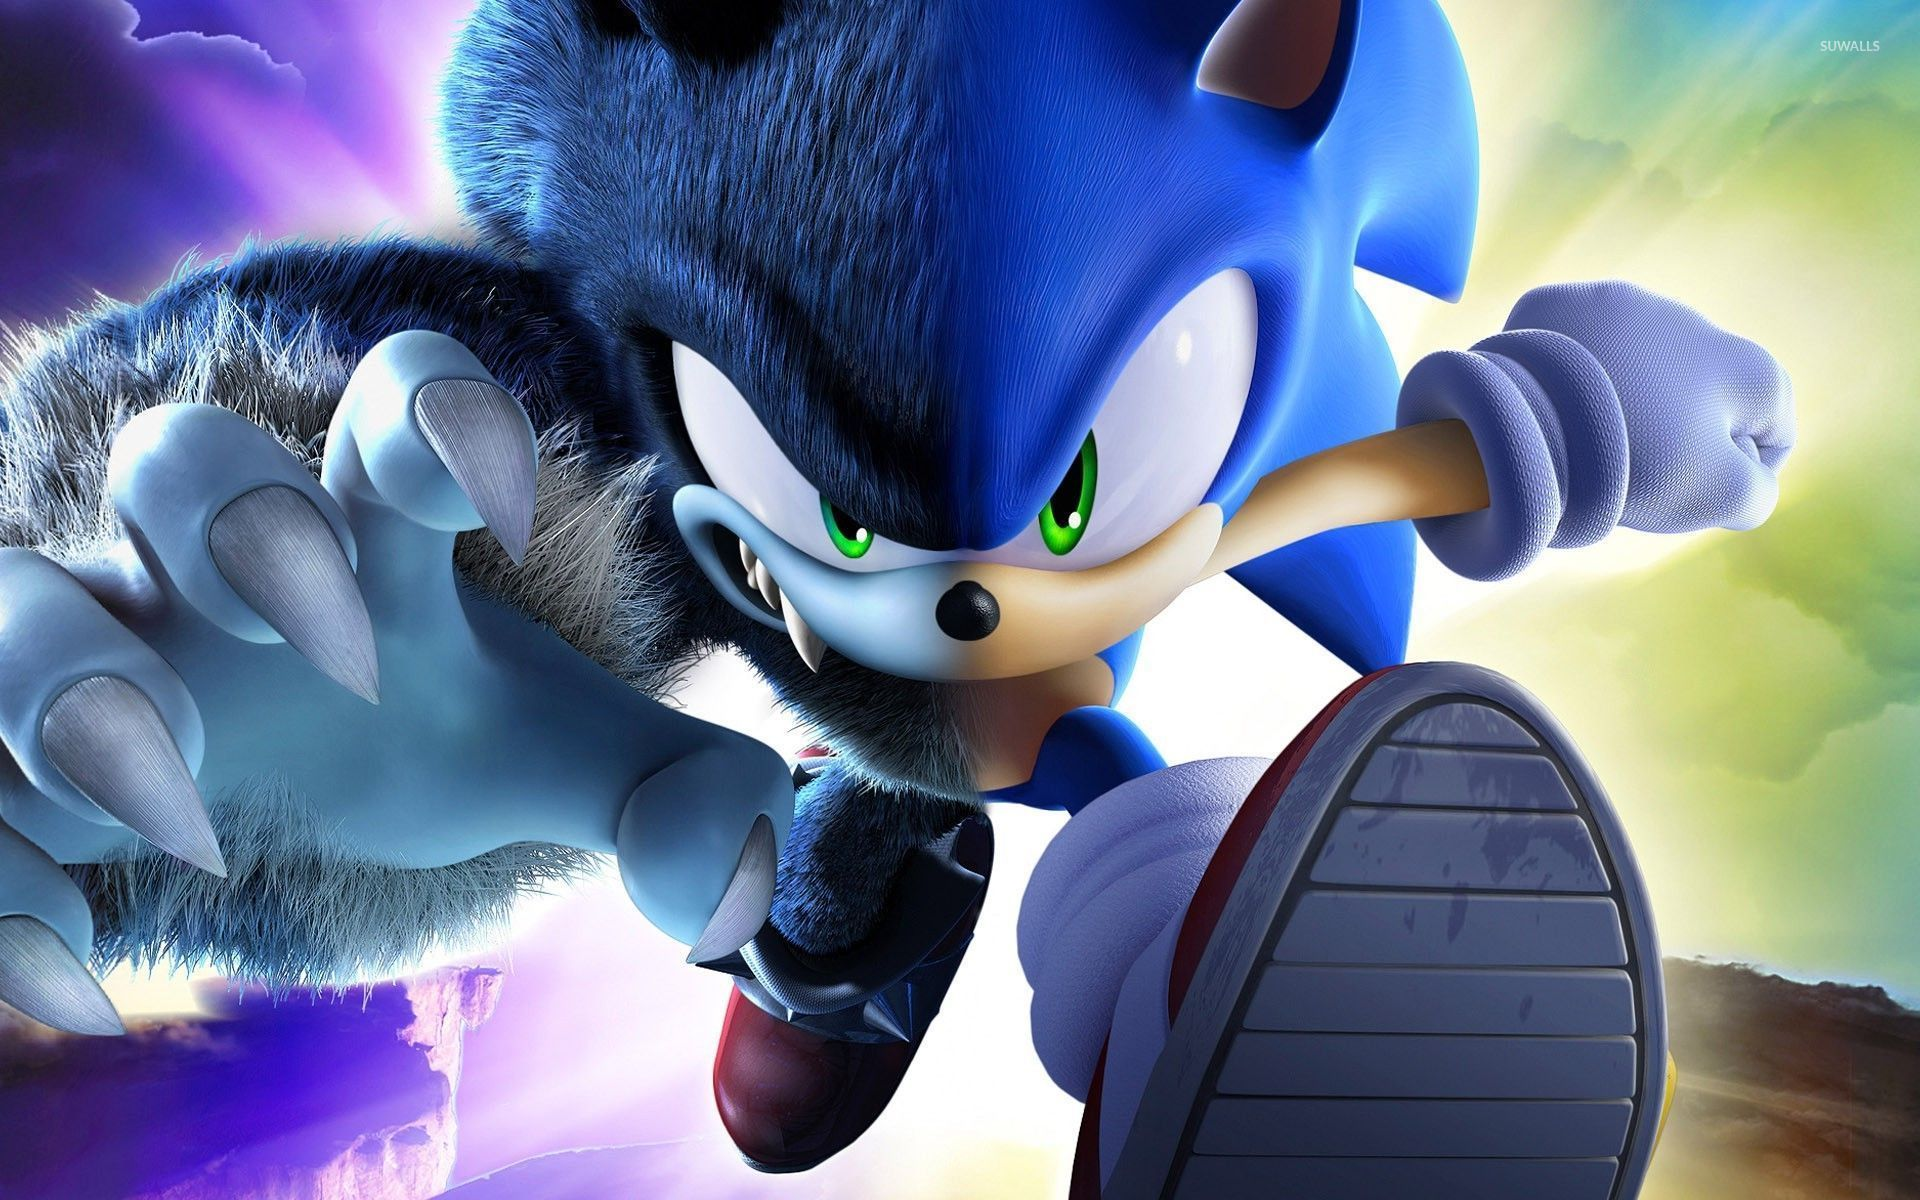 Angry Sonic the Hedgehog wallpaper